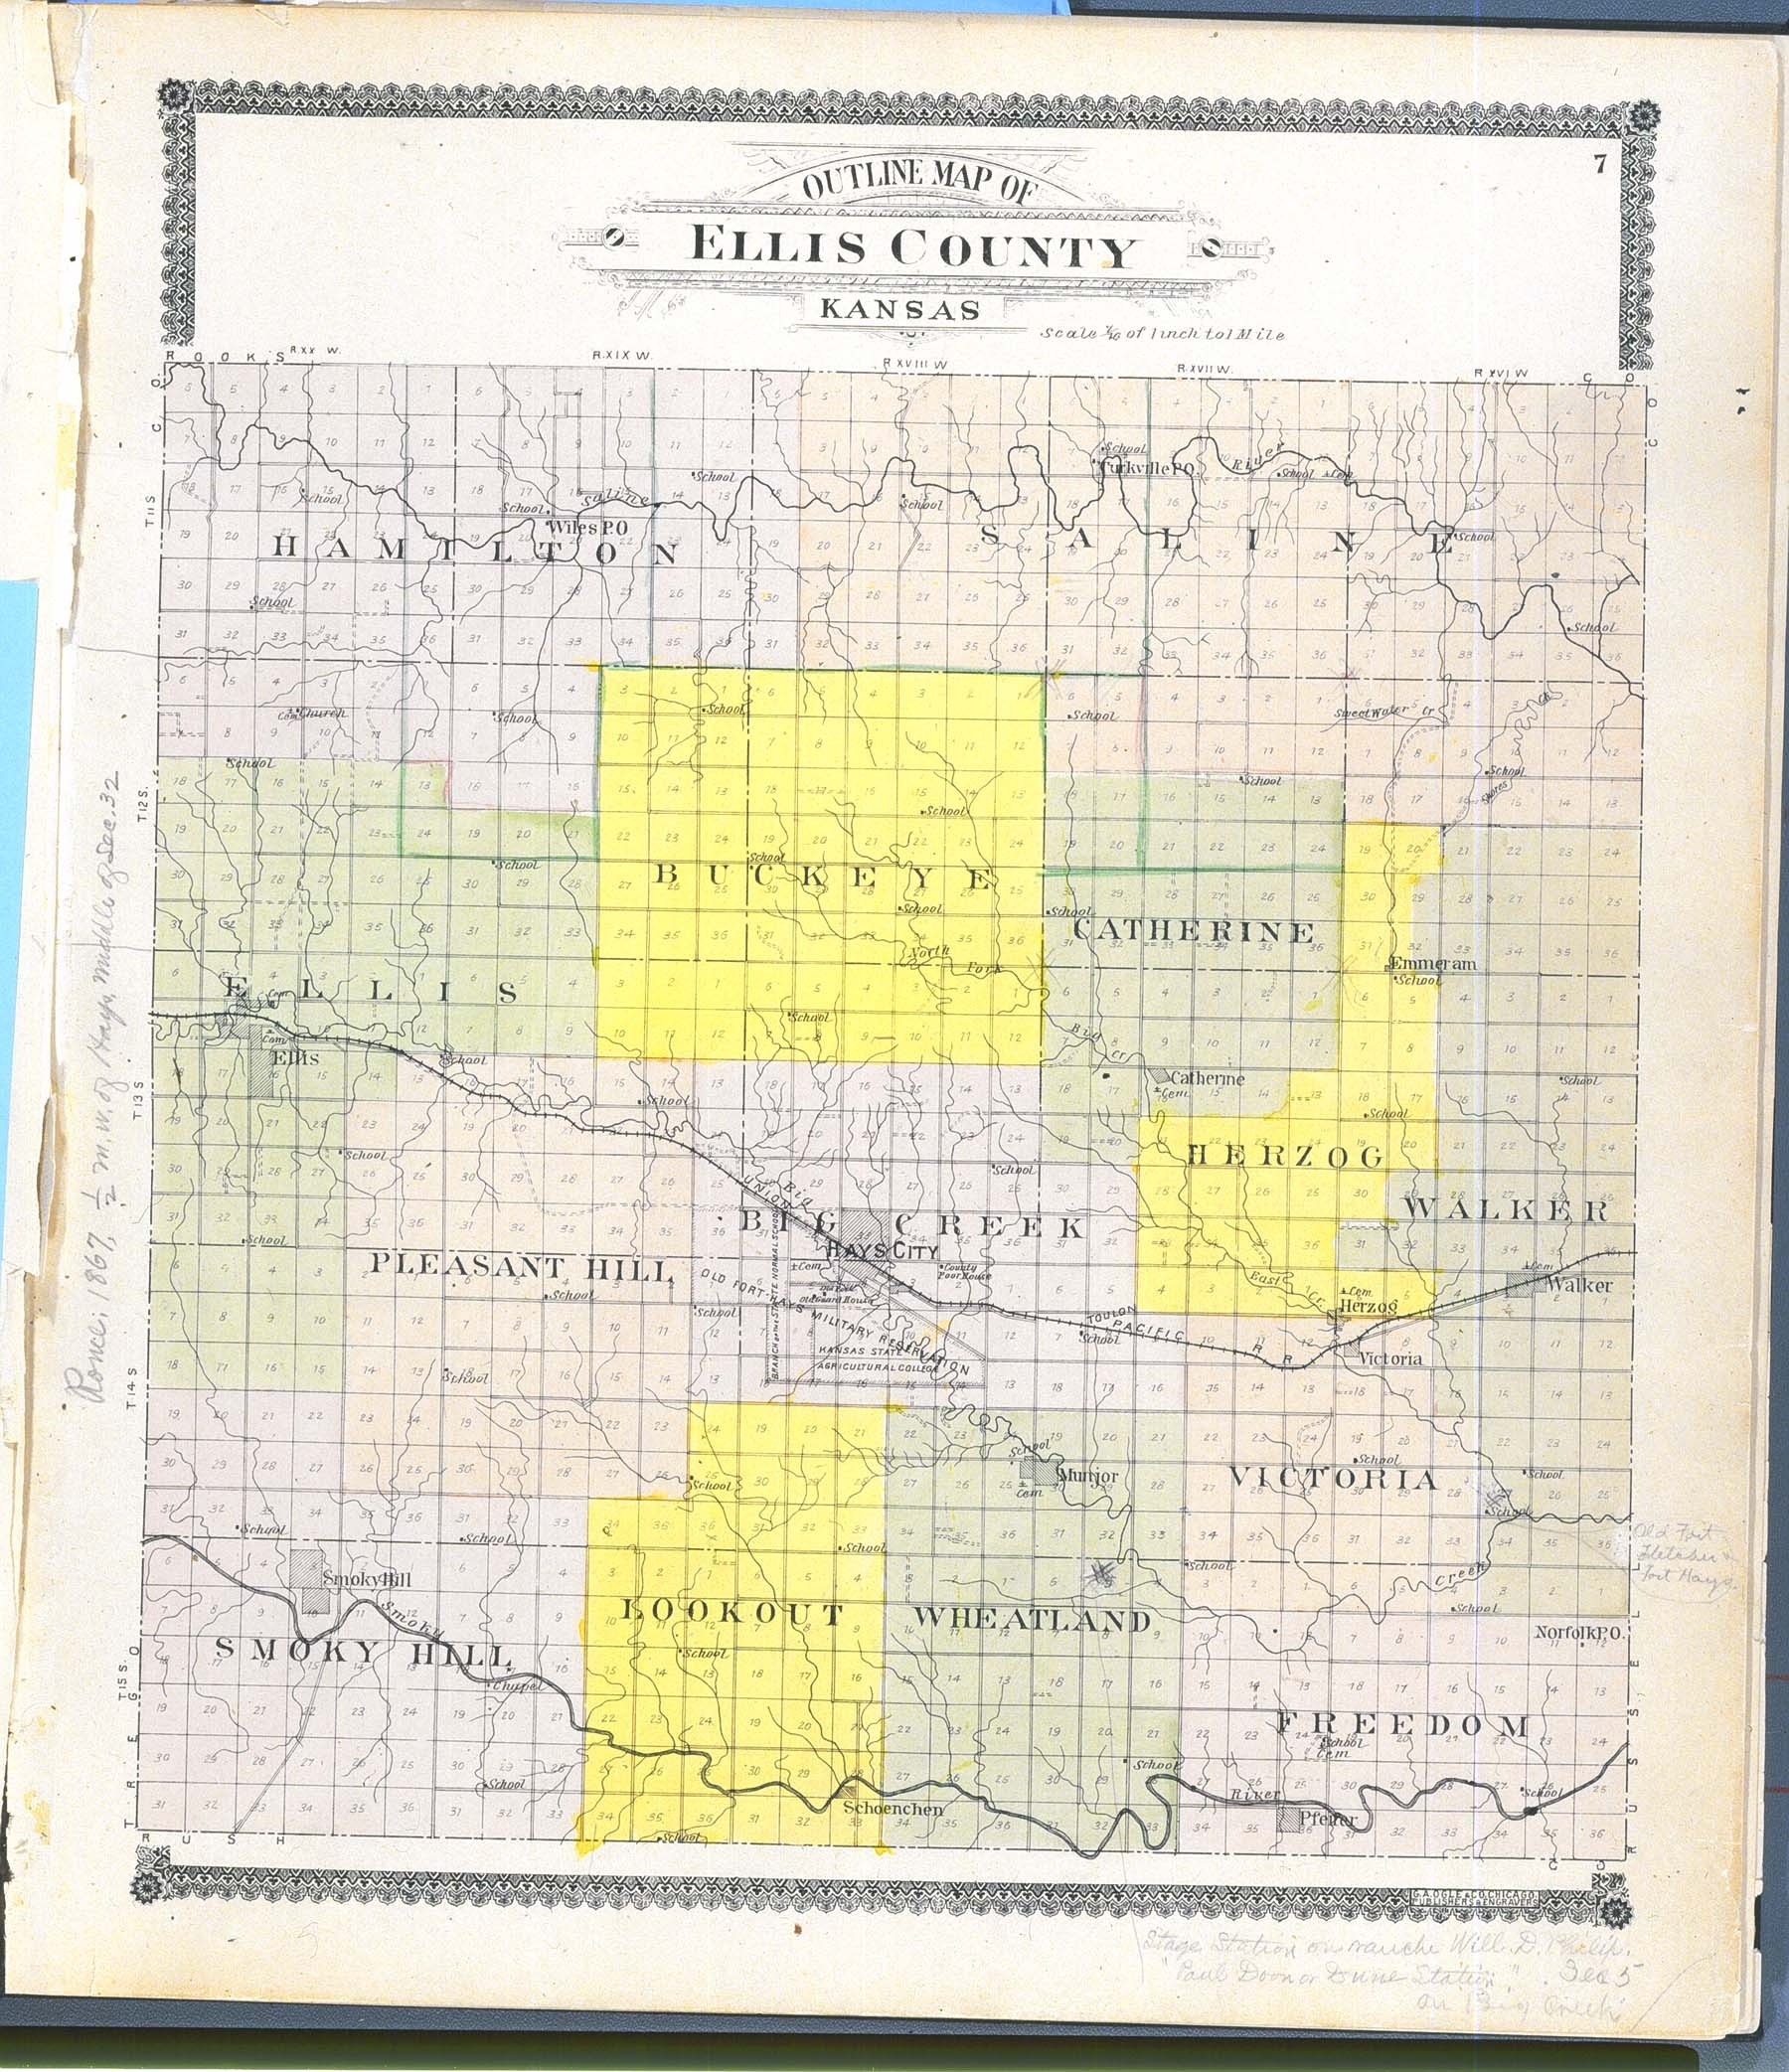 Standard atlas of Ellis County, Kansas - 7